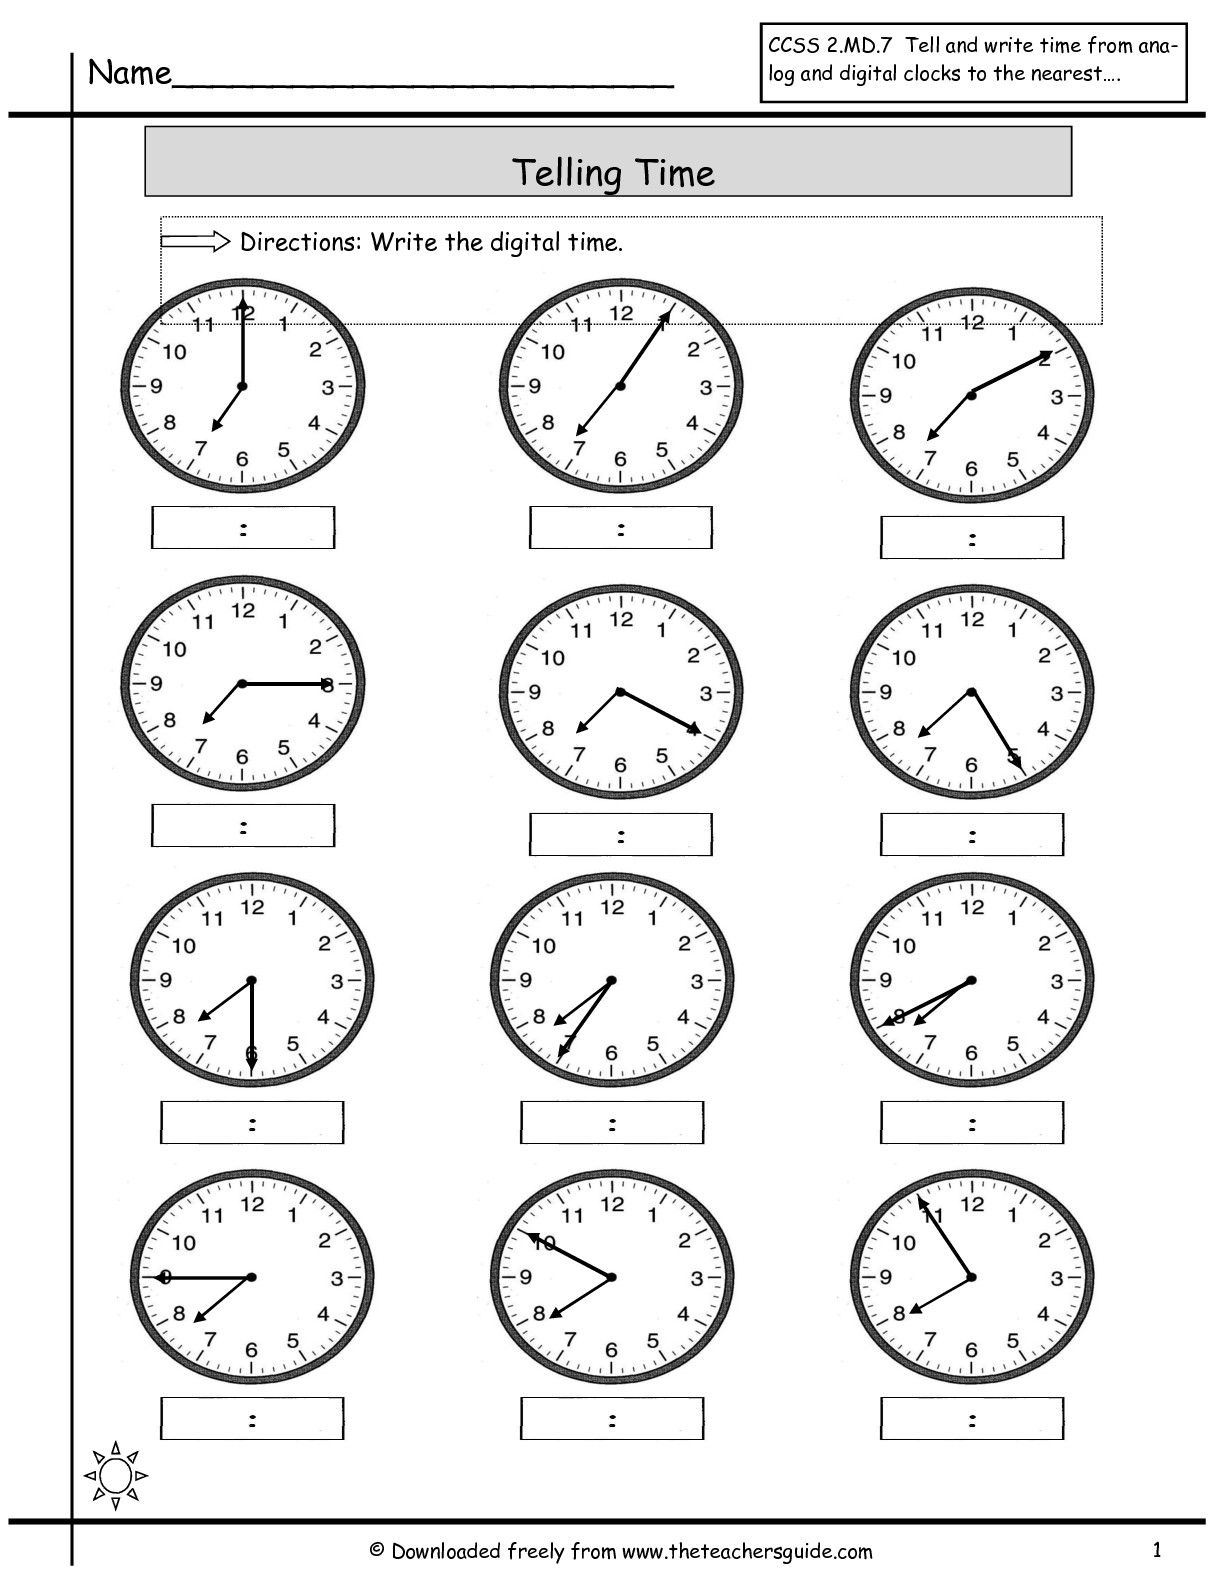 Telling Time Worksheets from The Teacher's Guide   Time worksheets [ 1584 x 1224 Pixel ]